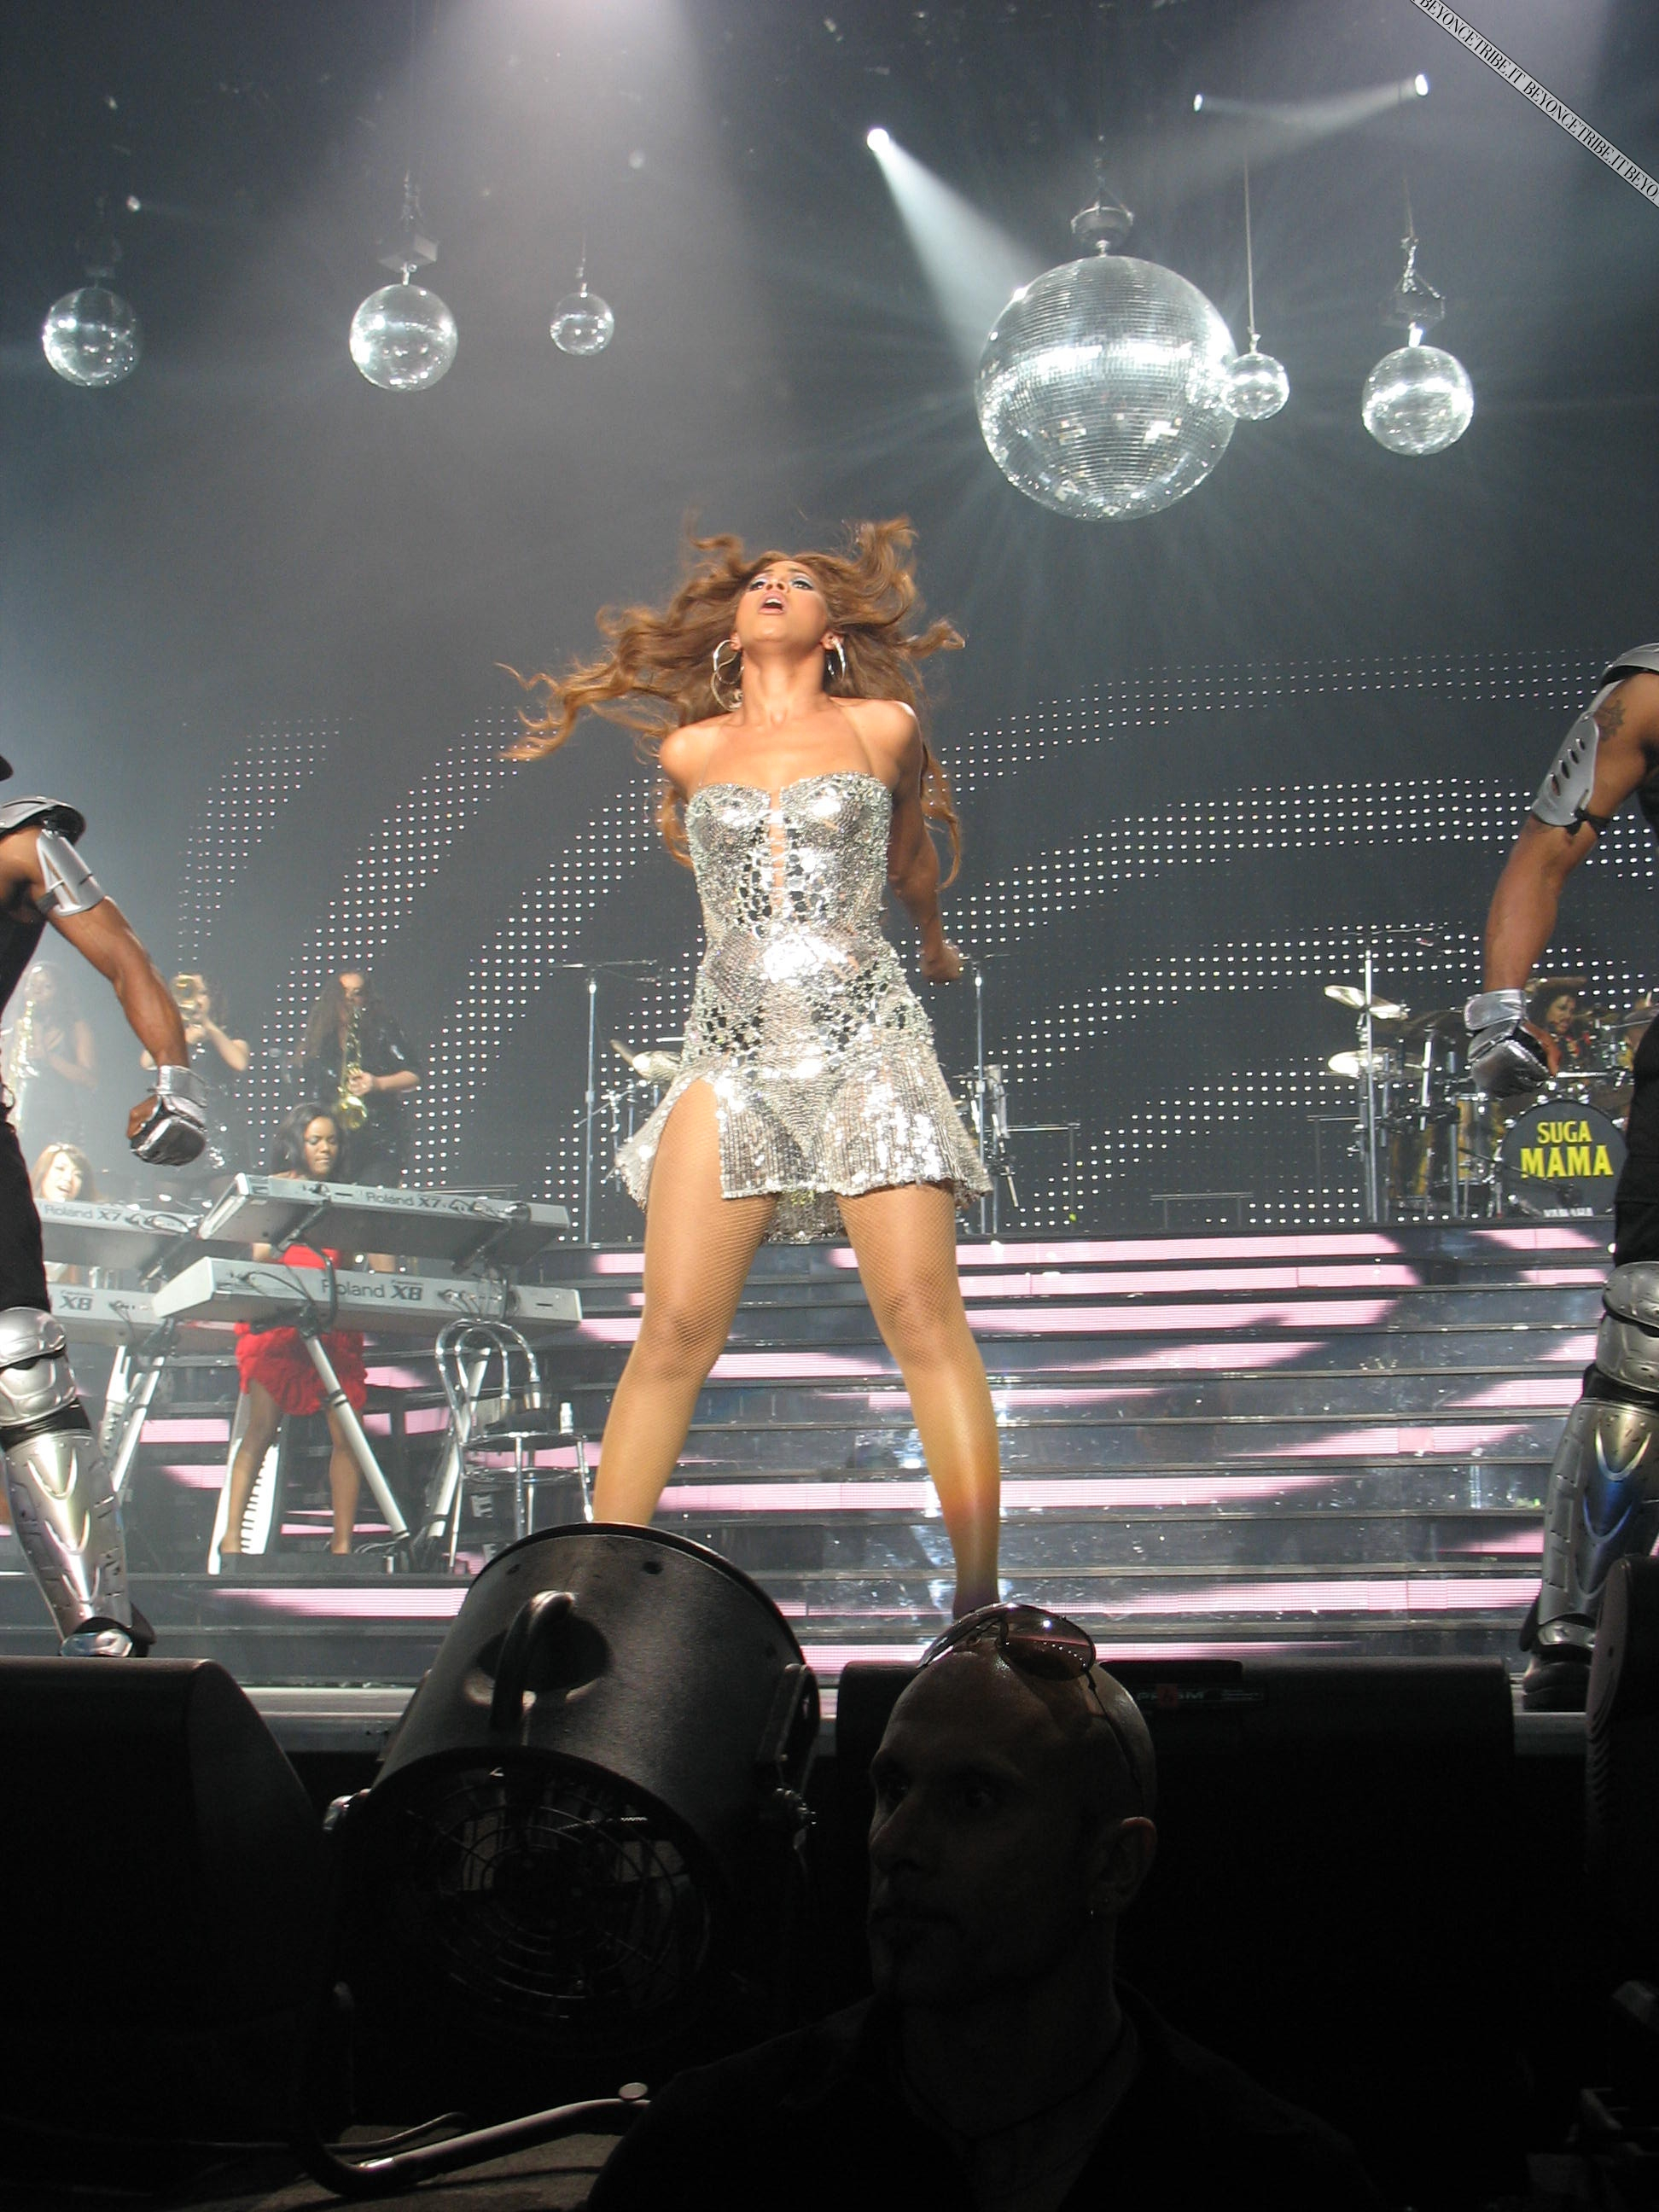 b day beyonce tour 10-05-2007 032